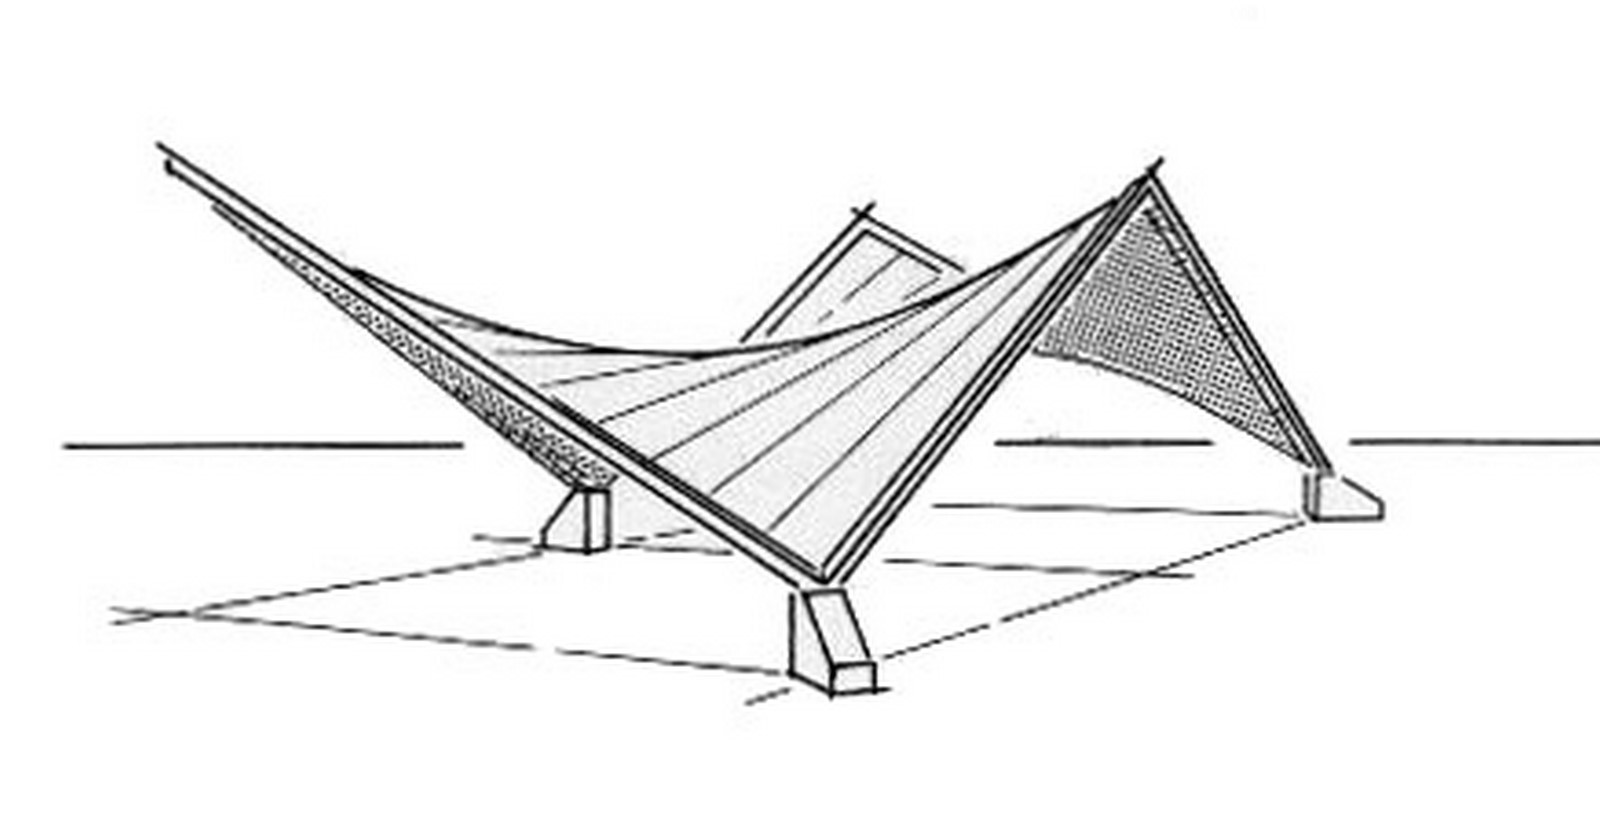 What are Hyperbolic paraboloid shells? - Sheet2